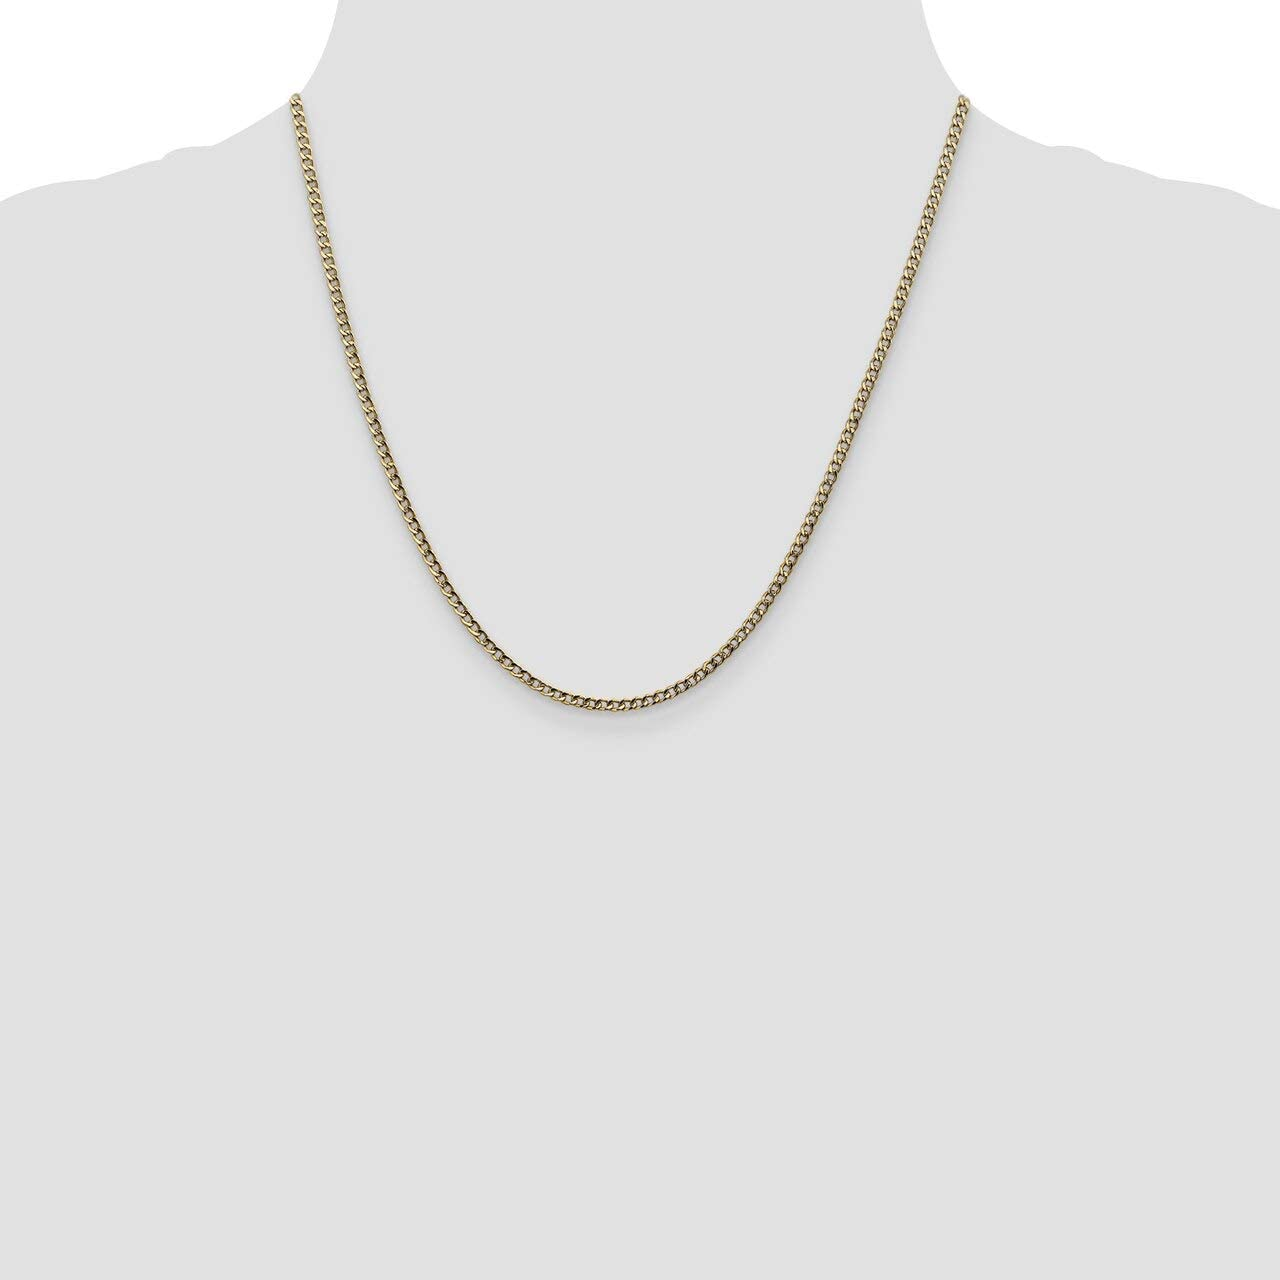 Lex /& Lu 14k Yellow Gold 2.5mm Semi Solid Curb Link Chain Necklace or Bracelet